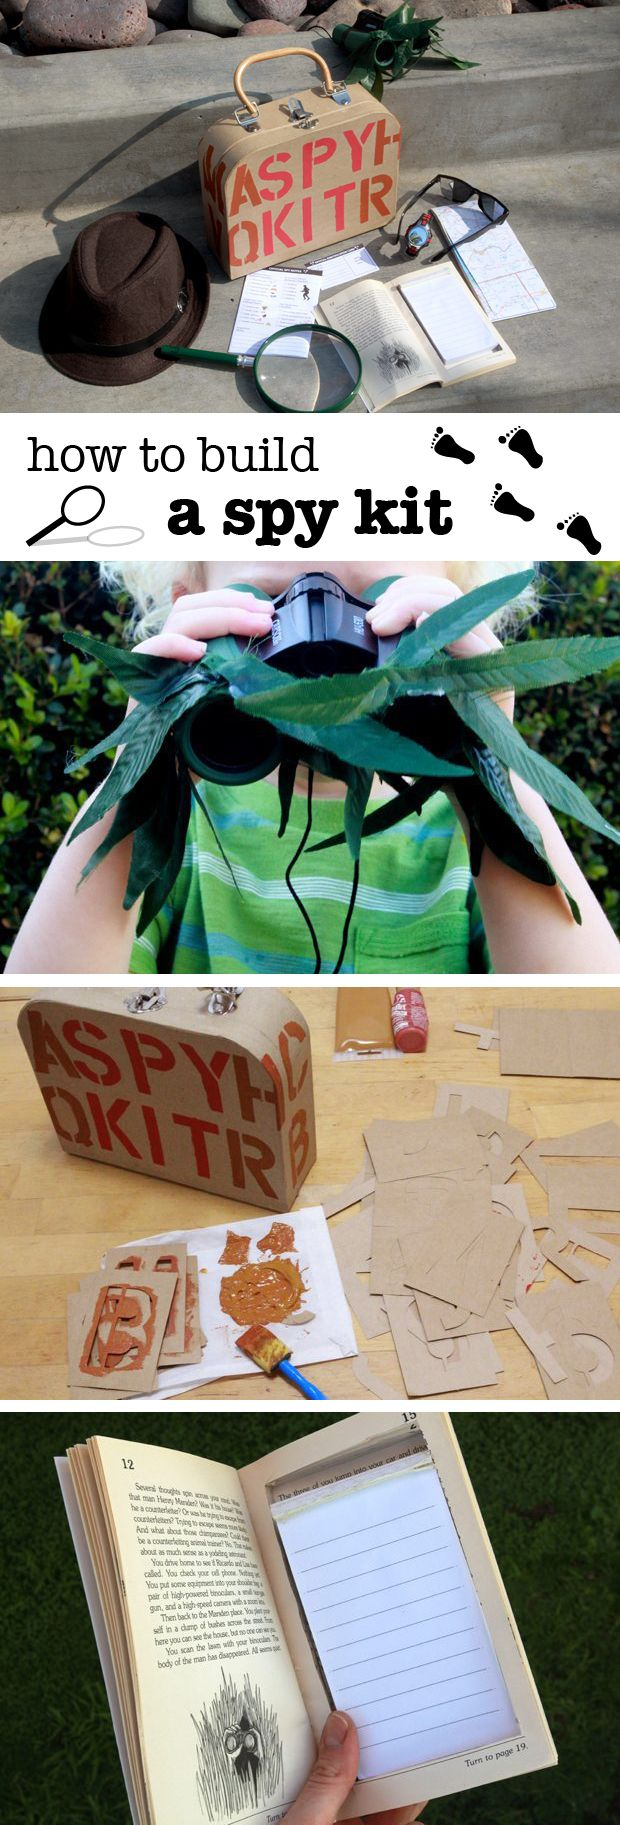 how to make a spy kit with household items